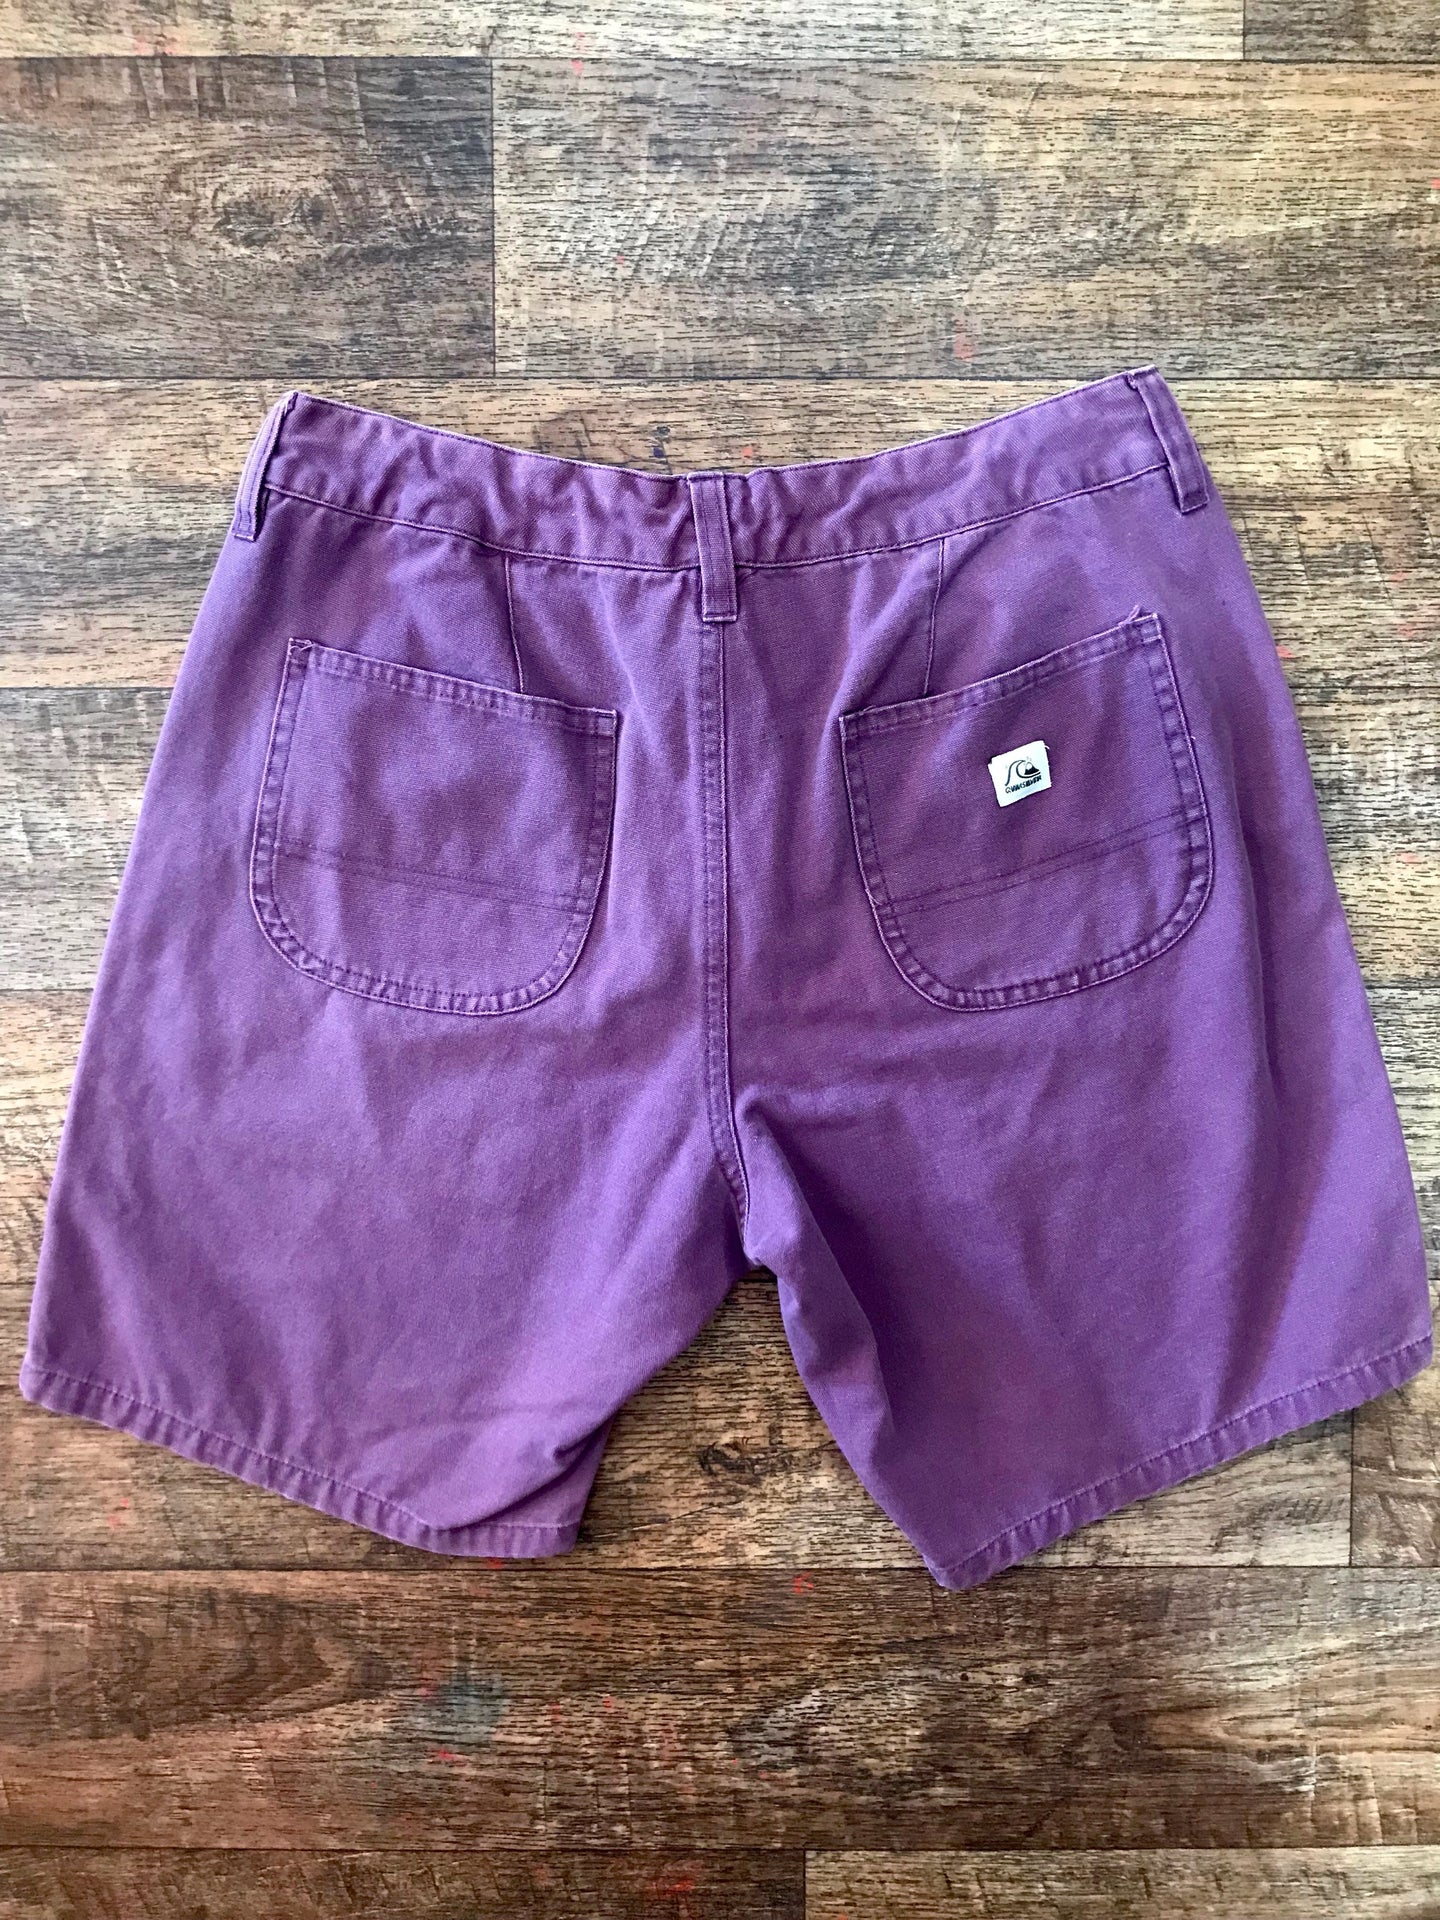 Pre-loved Katun Shorts - Size 30